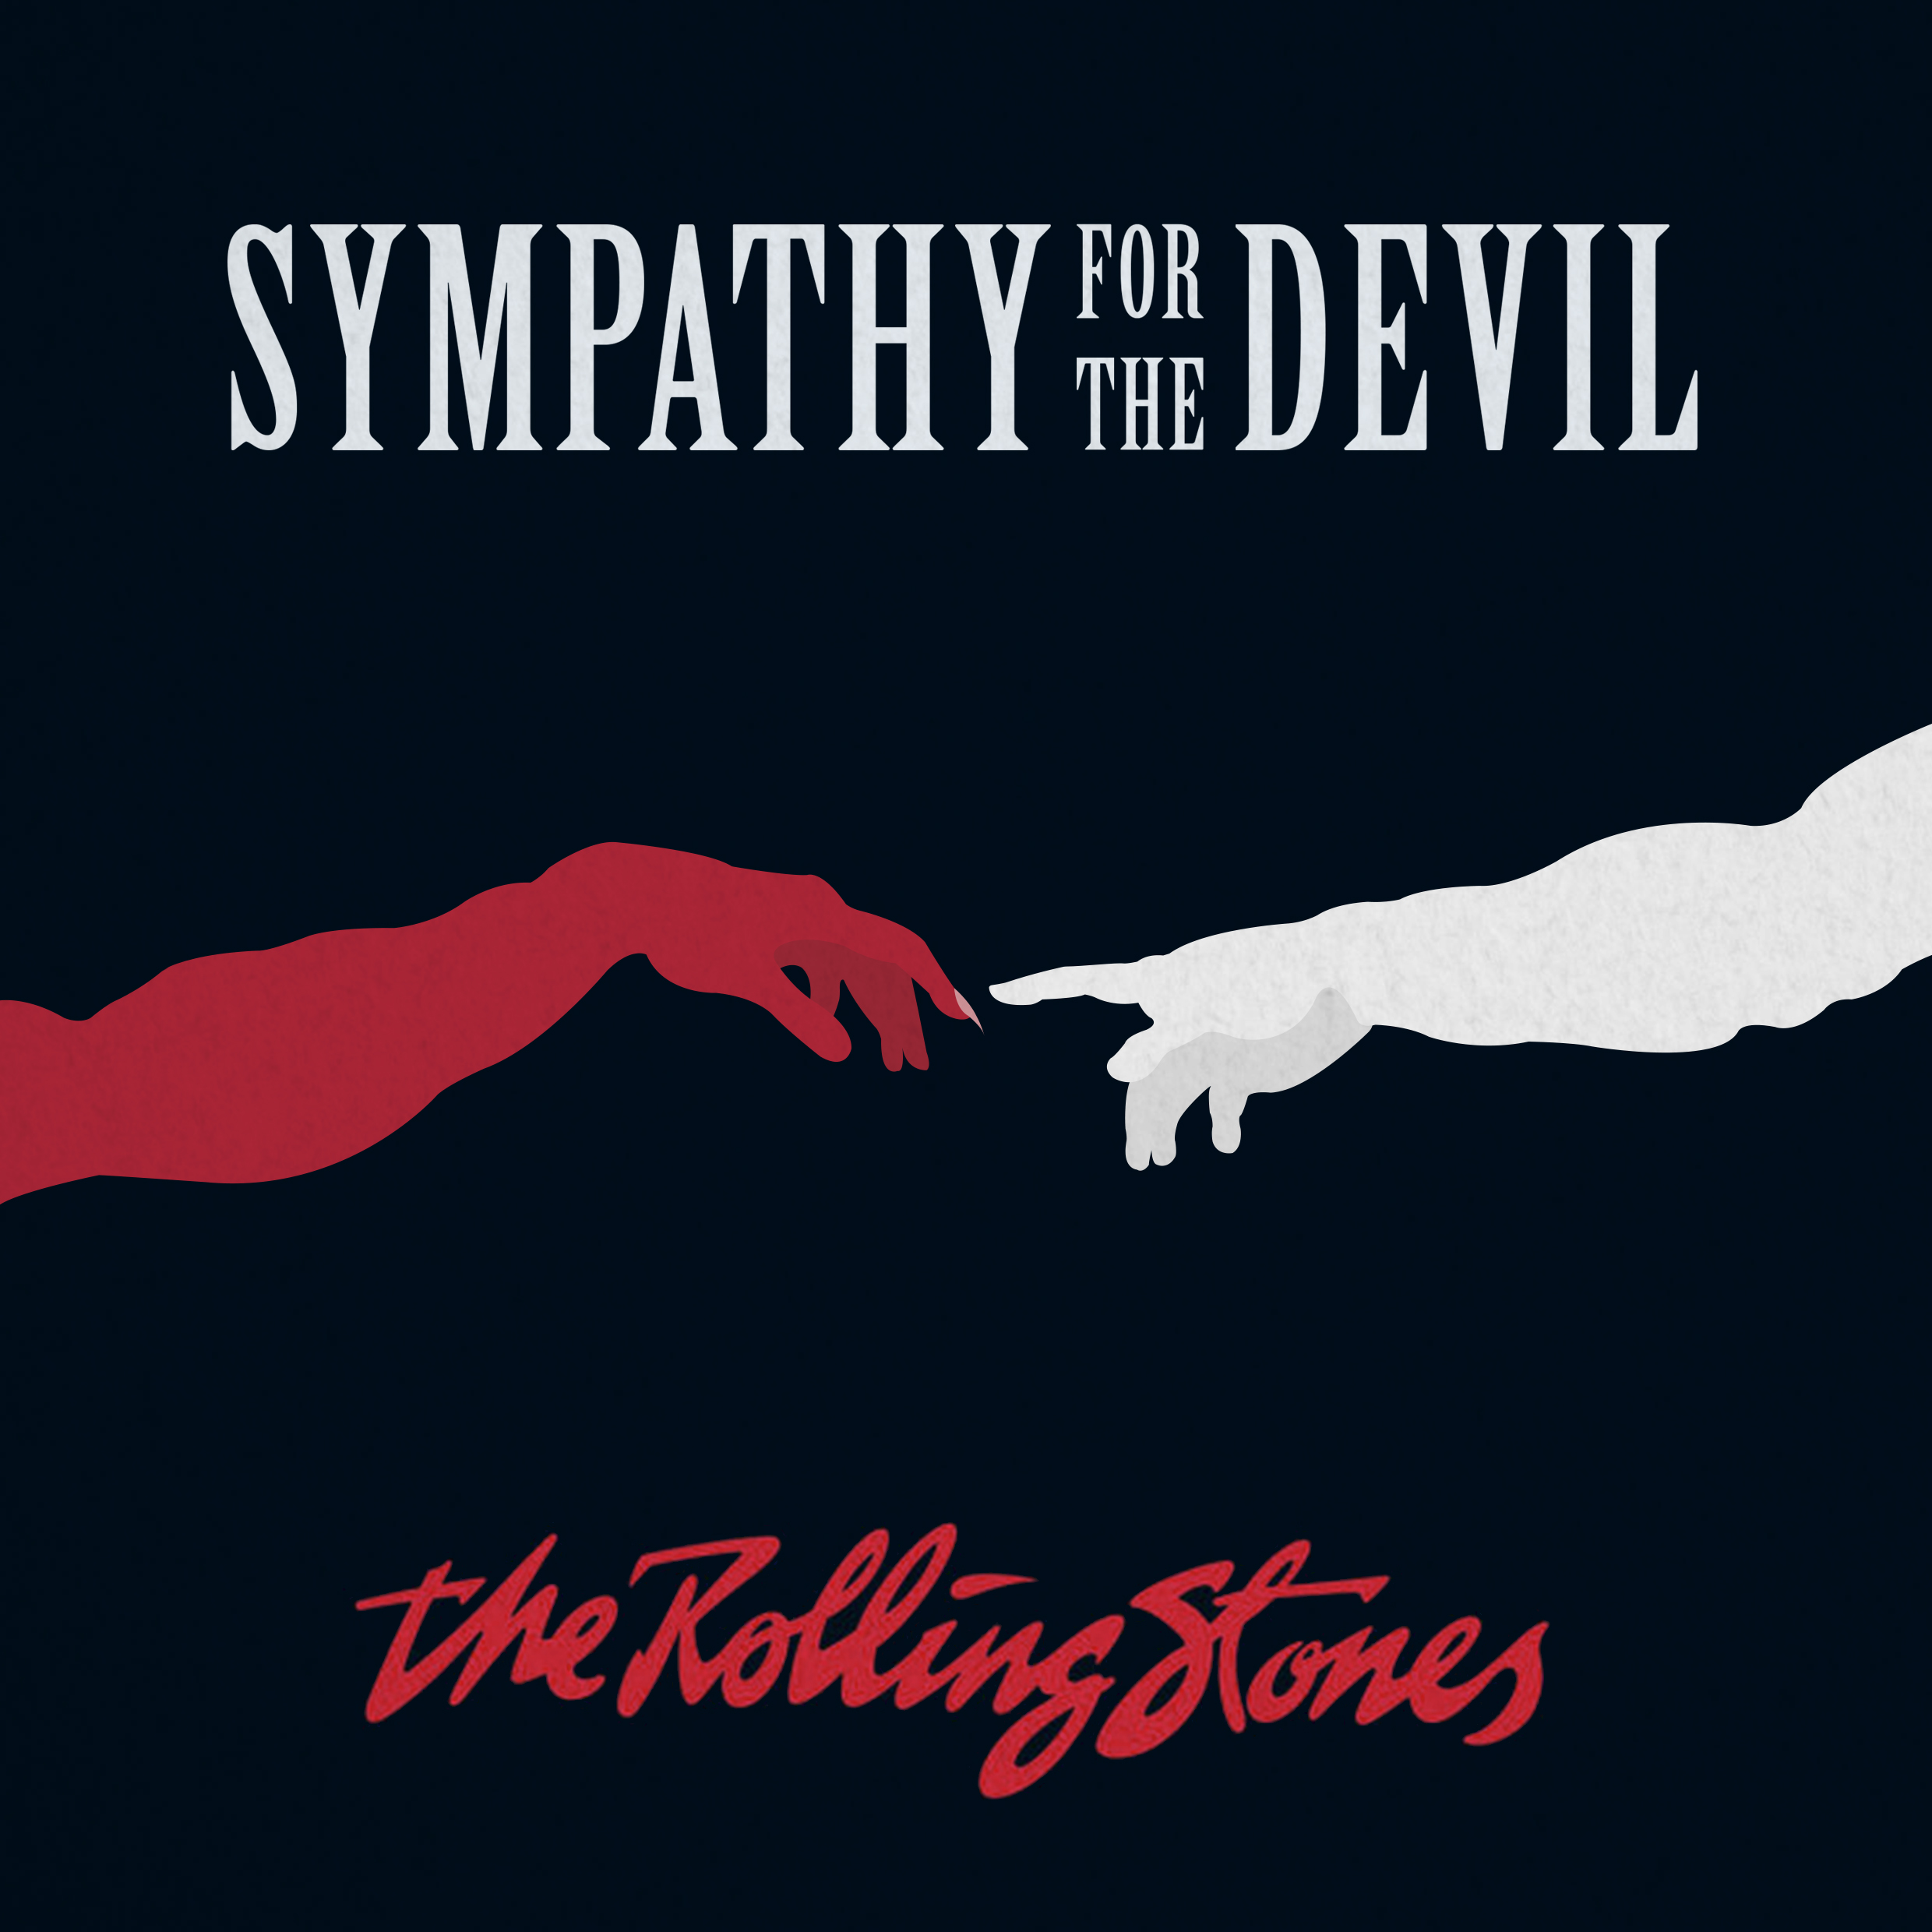 The Rolling Stones - Sympathy For The Devil (Chords)